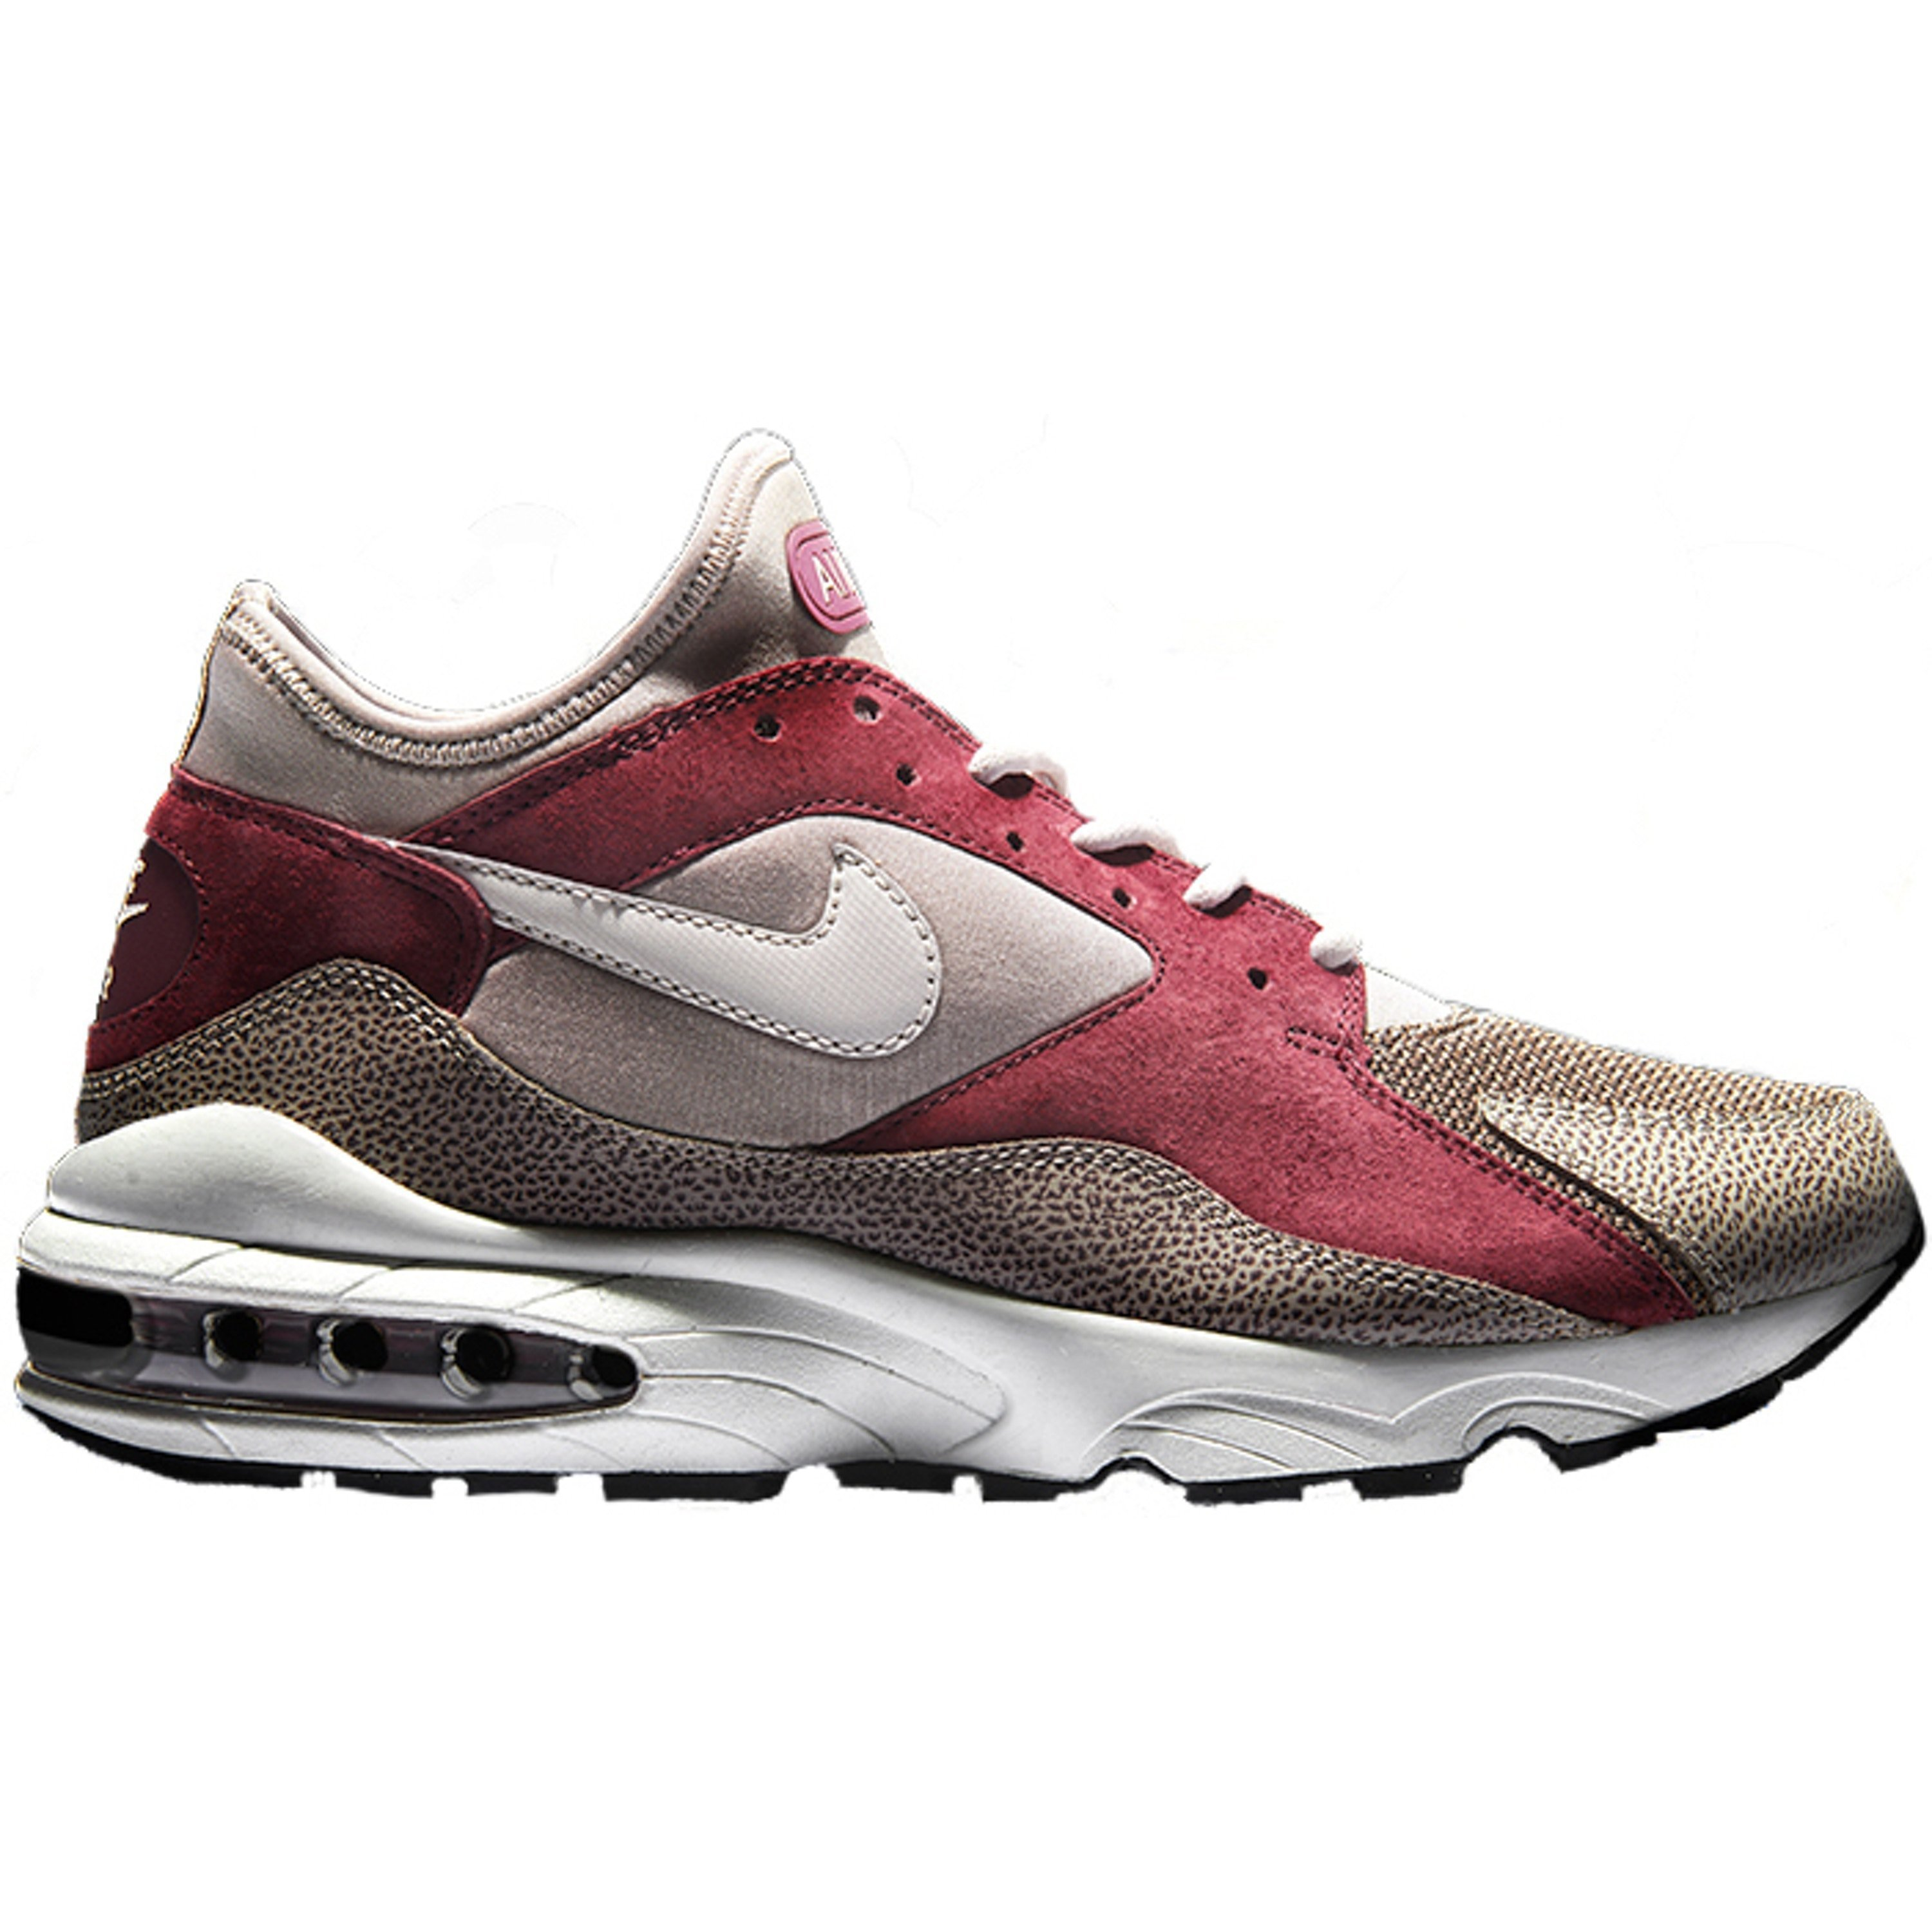 Air Max 93 size? Metals Zinc